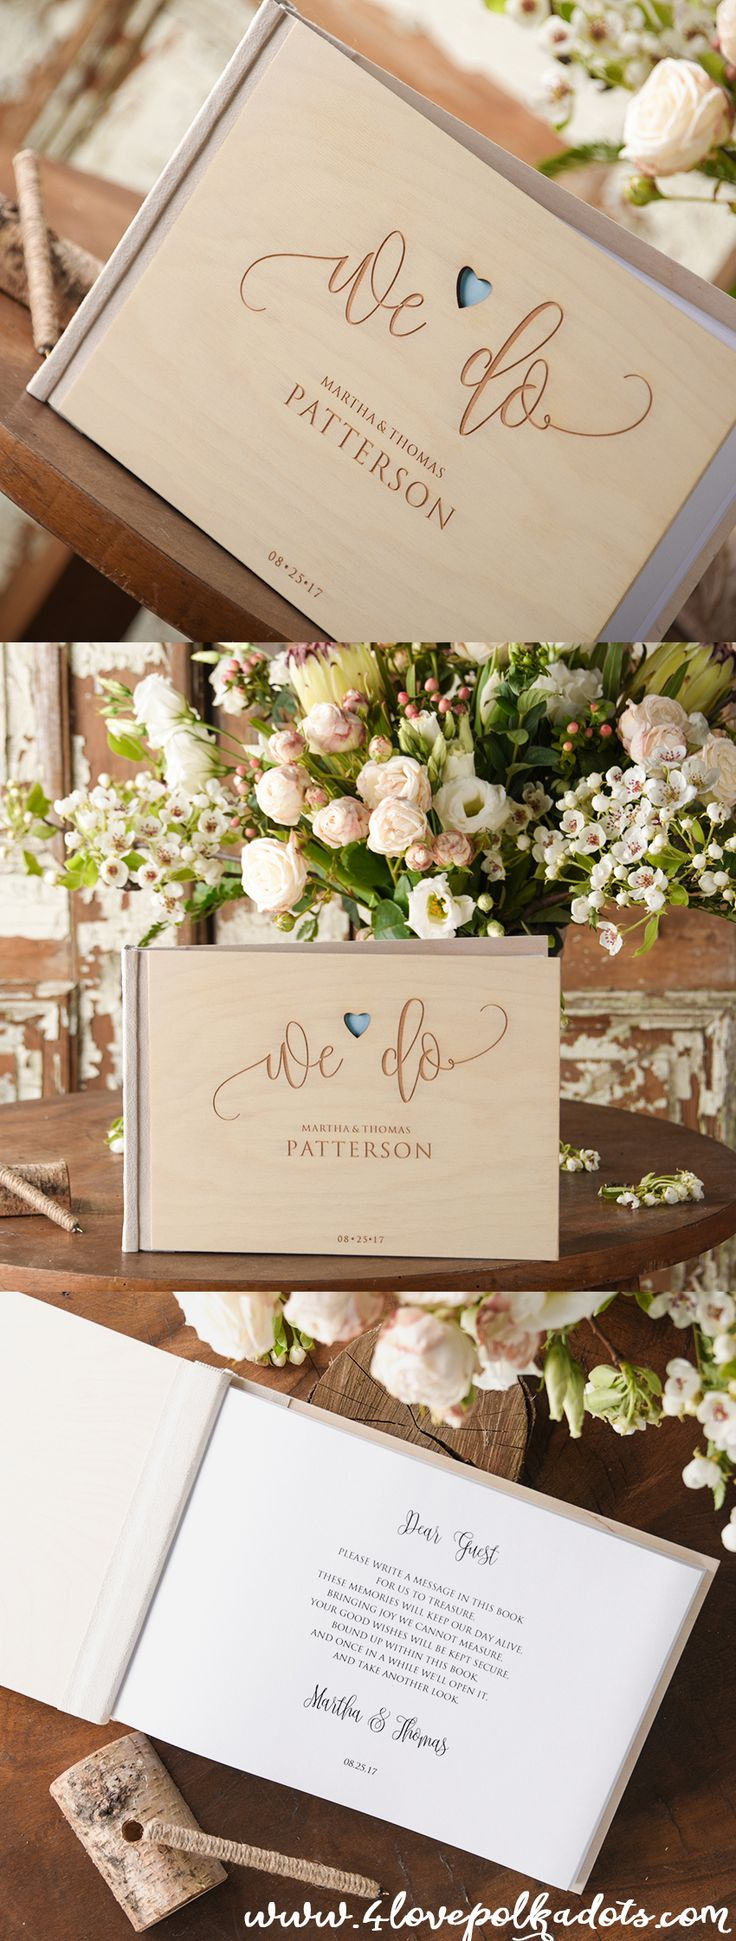 Boho Wedding Guest Book  #weddigguestbook